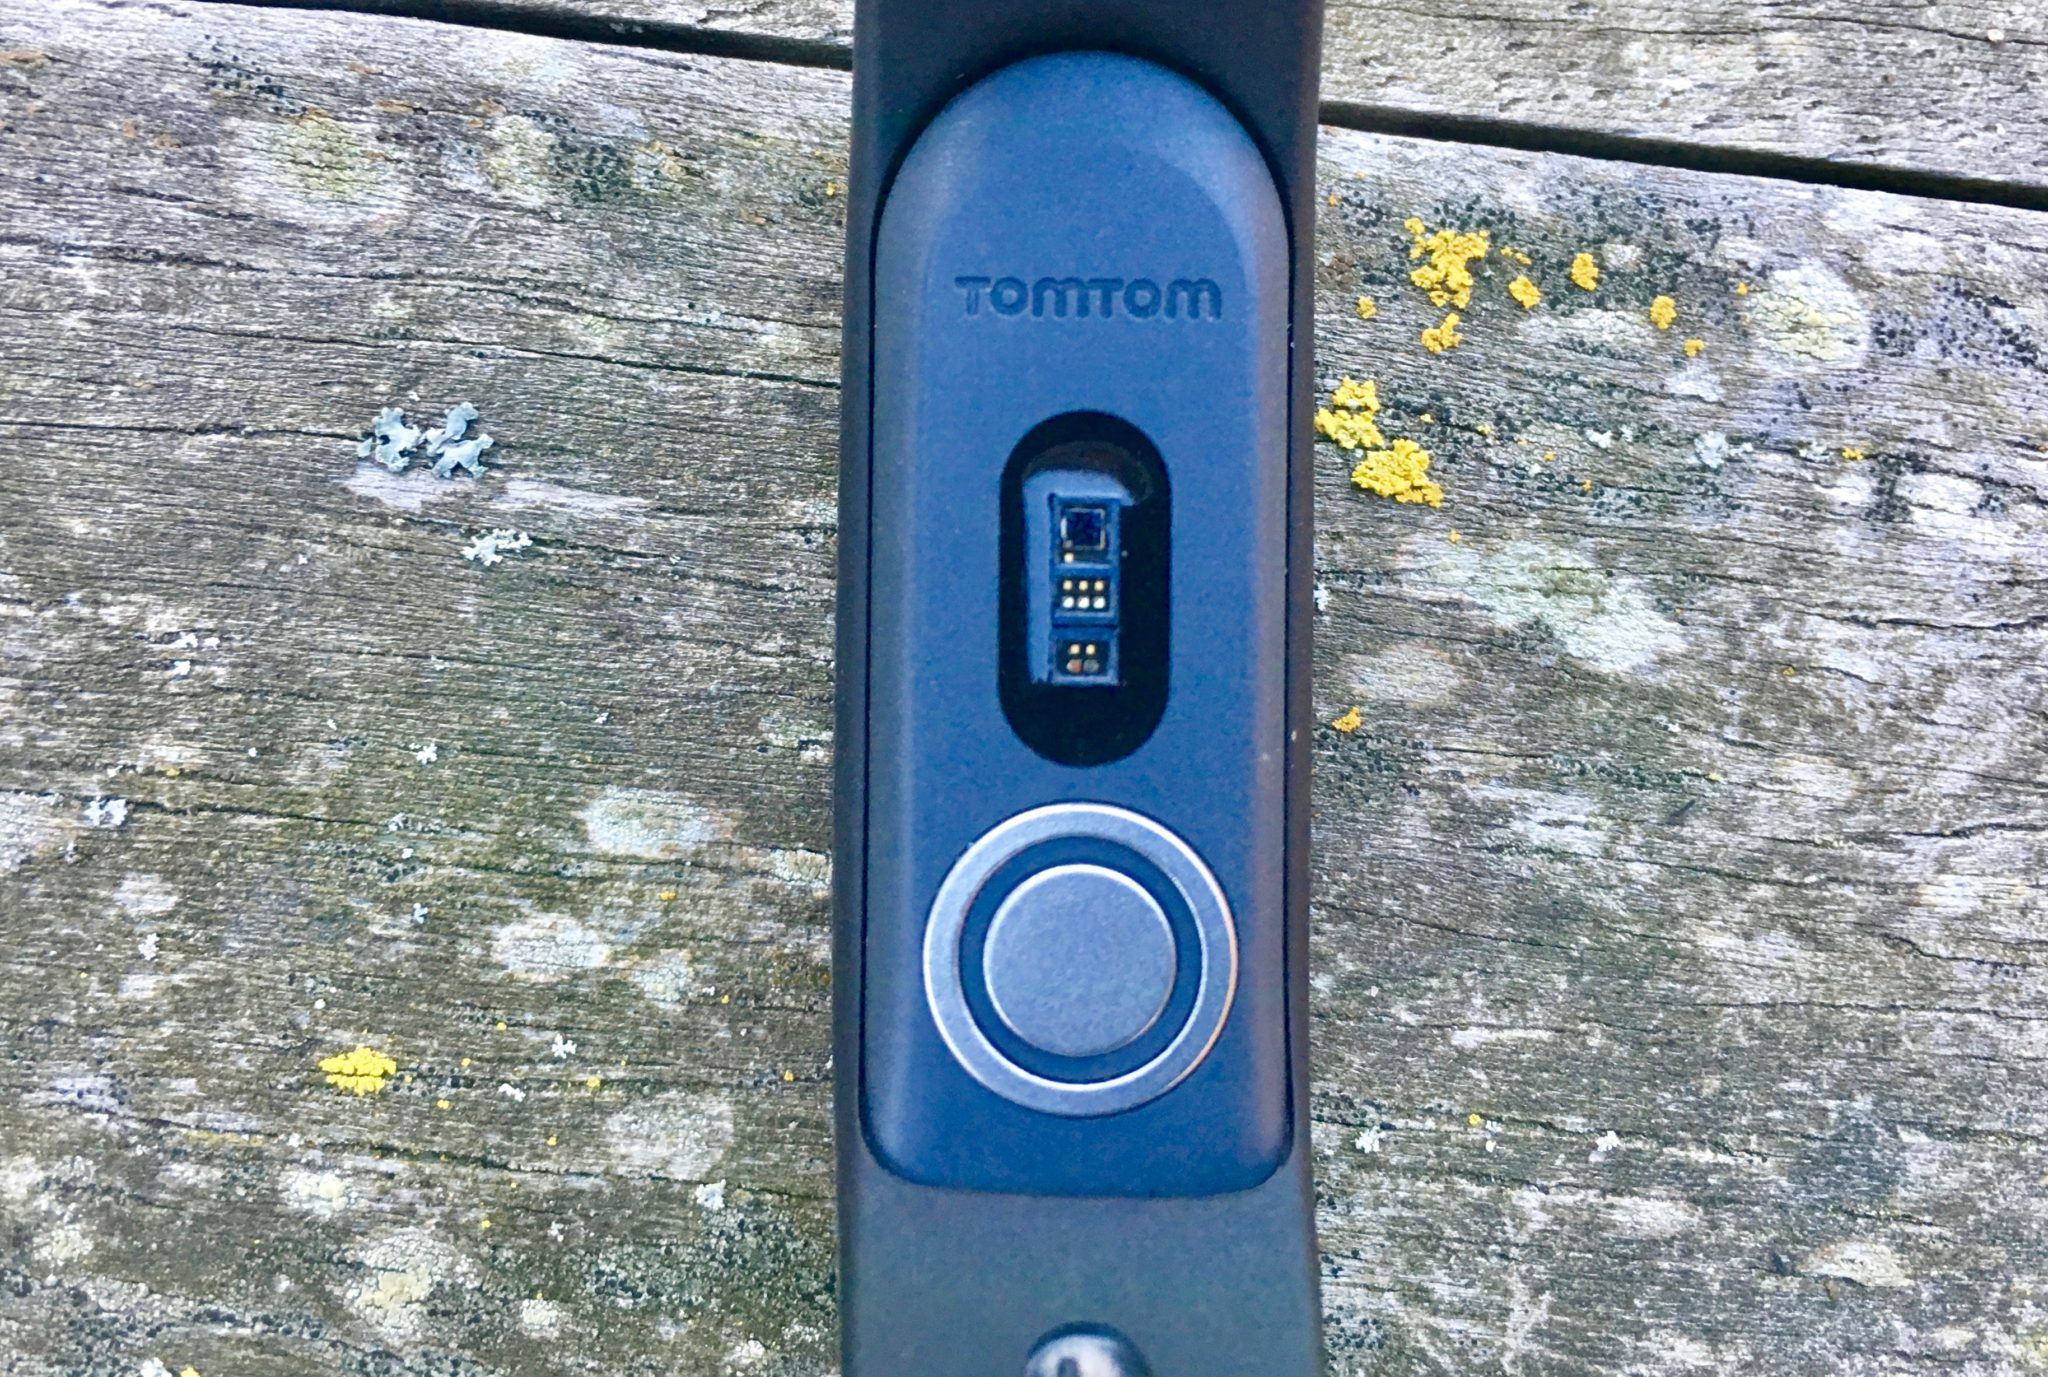 The electrode on the underside of the TomTom Touch